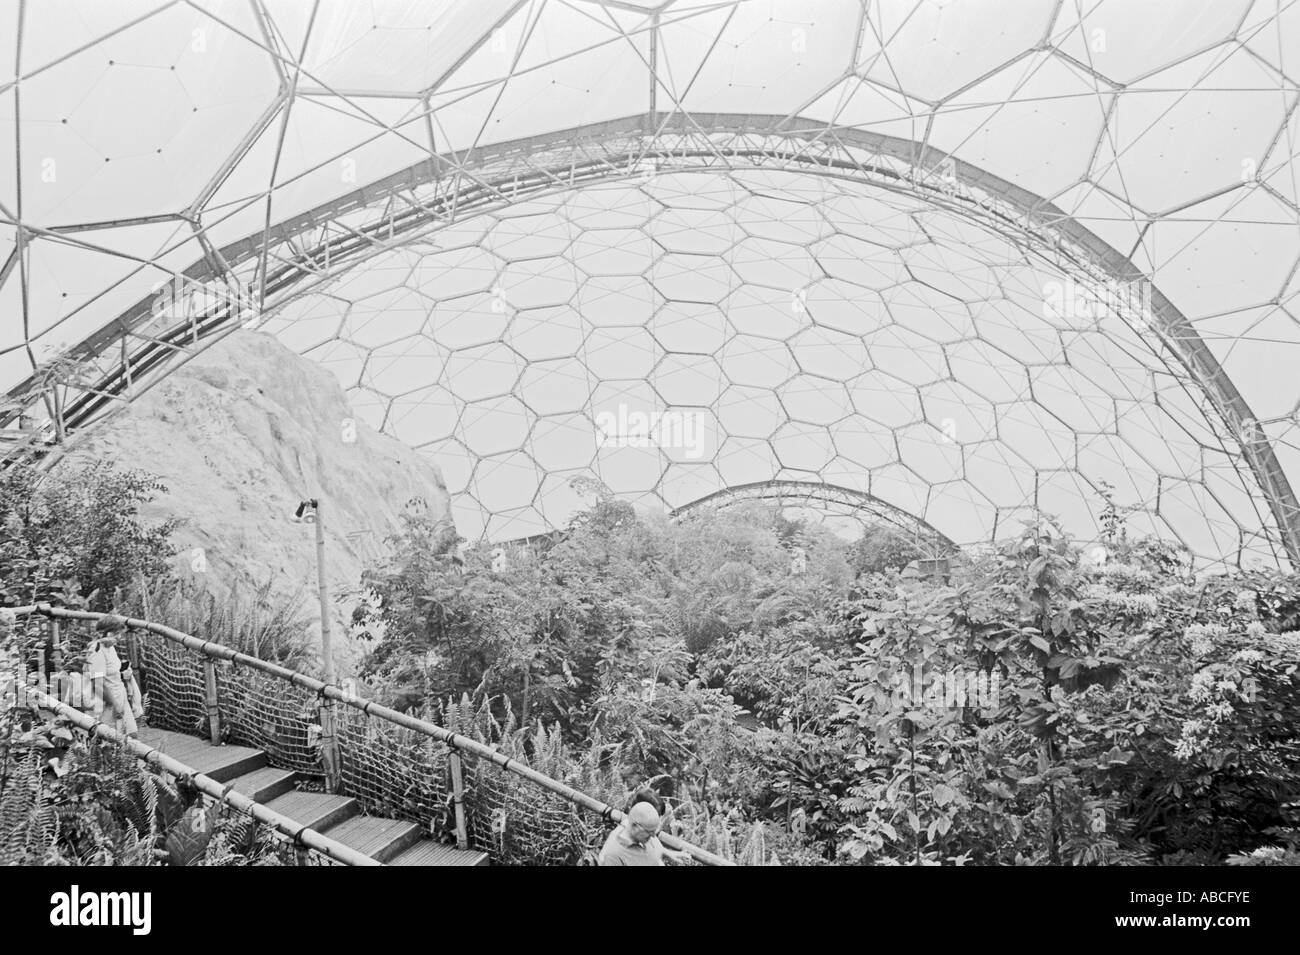 View Of The Structure At Eden Project St Austell Cornwall UK